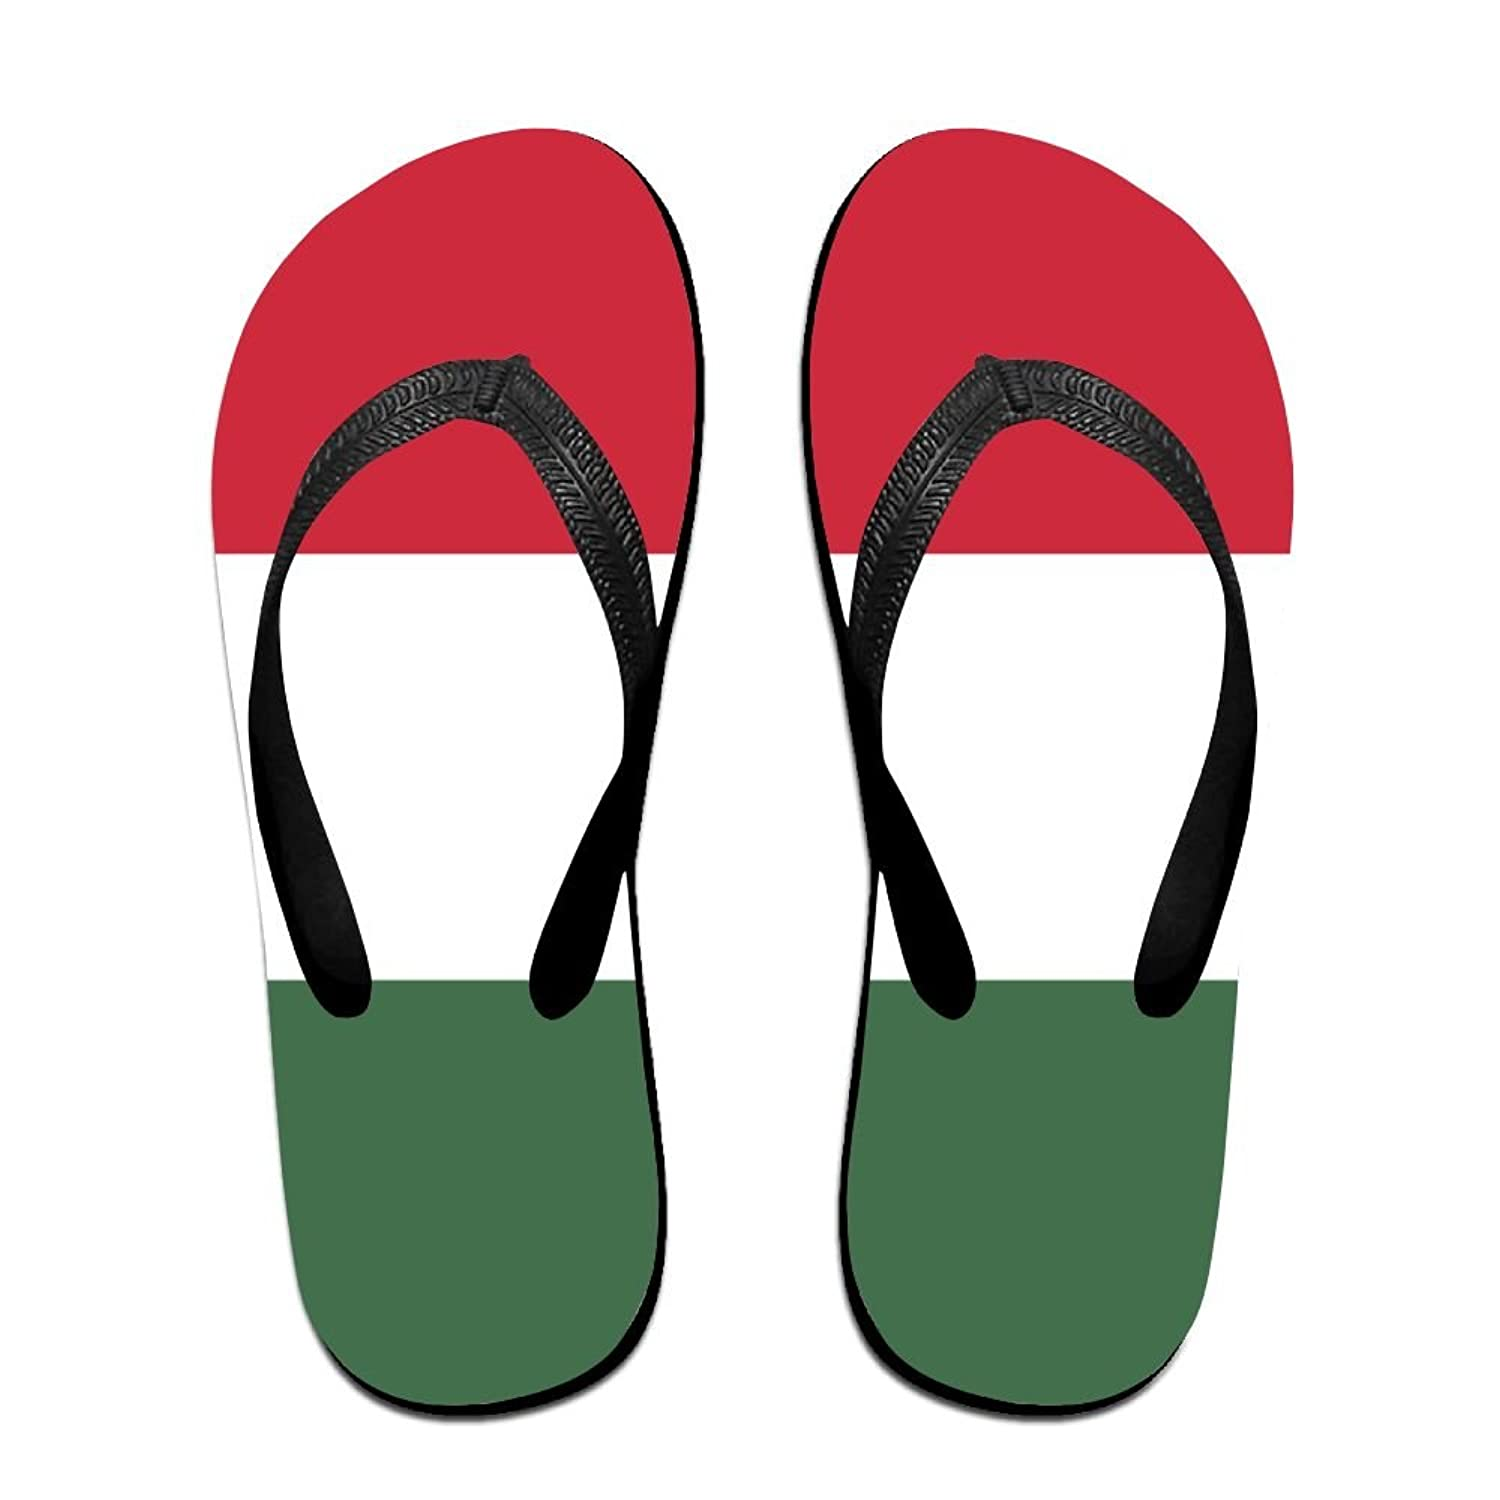 Flag Of Hungary Comfortable Flip Flops For Children Adults Men And Women Beach Sandals Pool Party Slippers